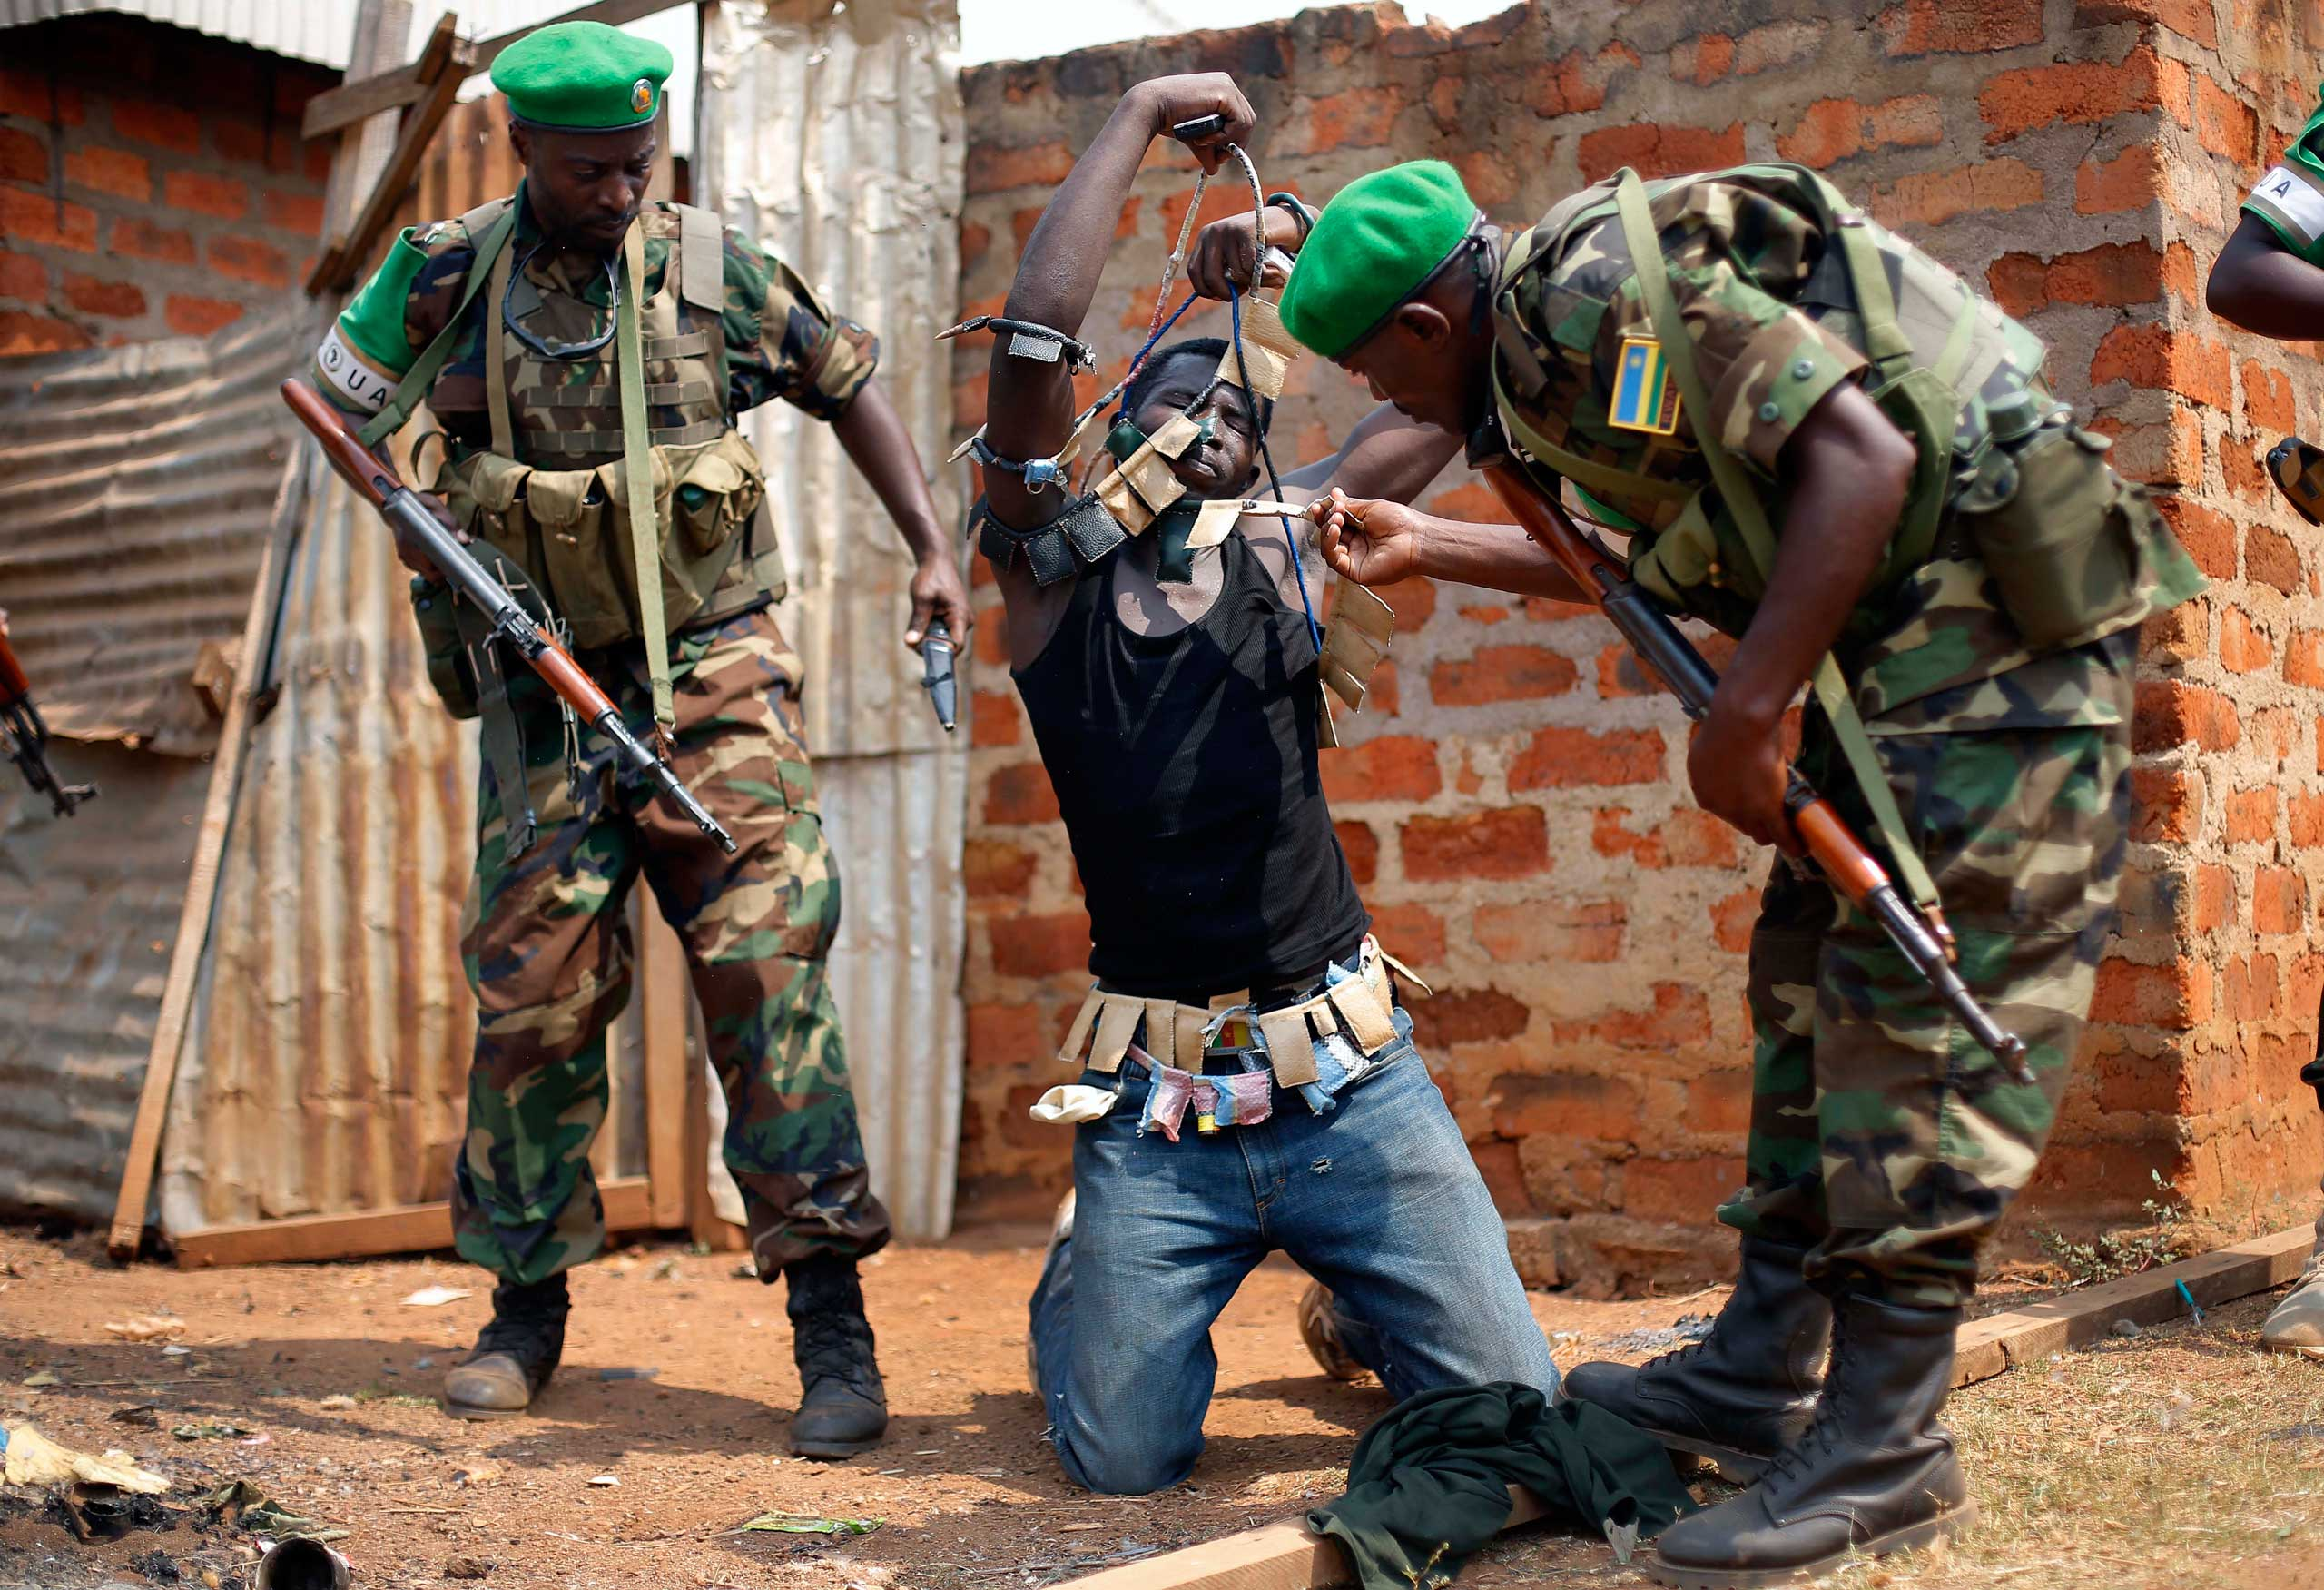 Rwandan African Union peacekeepers remove the lucky charms from a suspected Anti-balaka Christian man who was found with a rifle and a grenade following looting in the Muslim market of the PK13 district of Bangui, Central African Republic, Jan. 22, 2014.